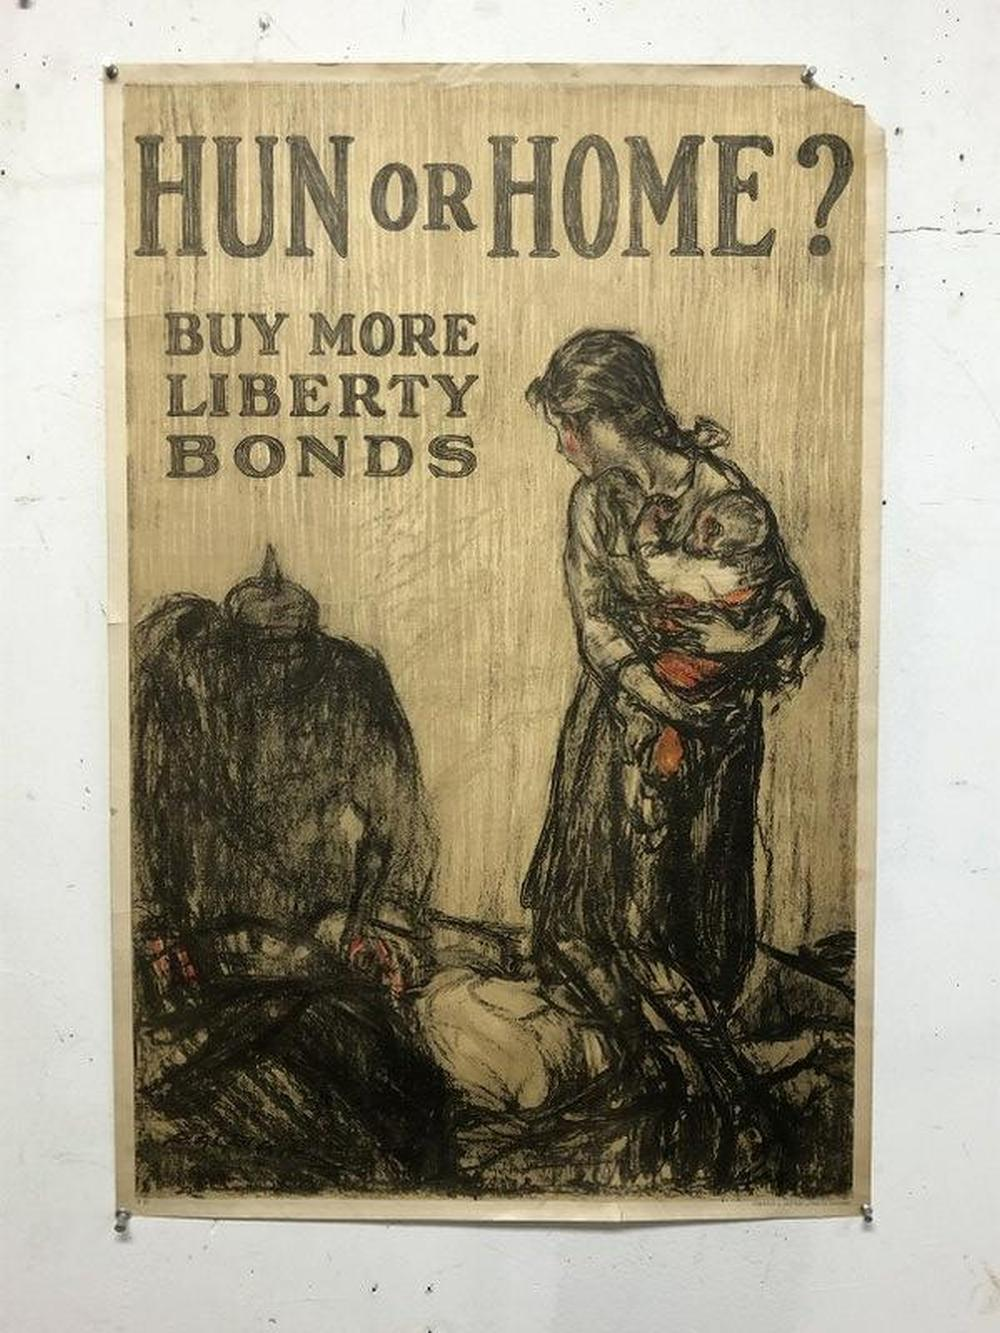 WWI POSTER- HUN OR HOME? BUY MORE LIBERTY BONDS,